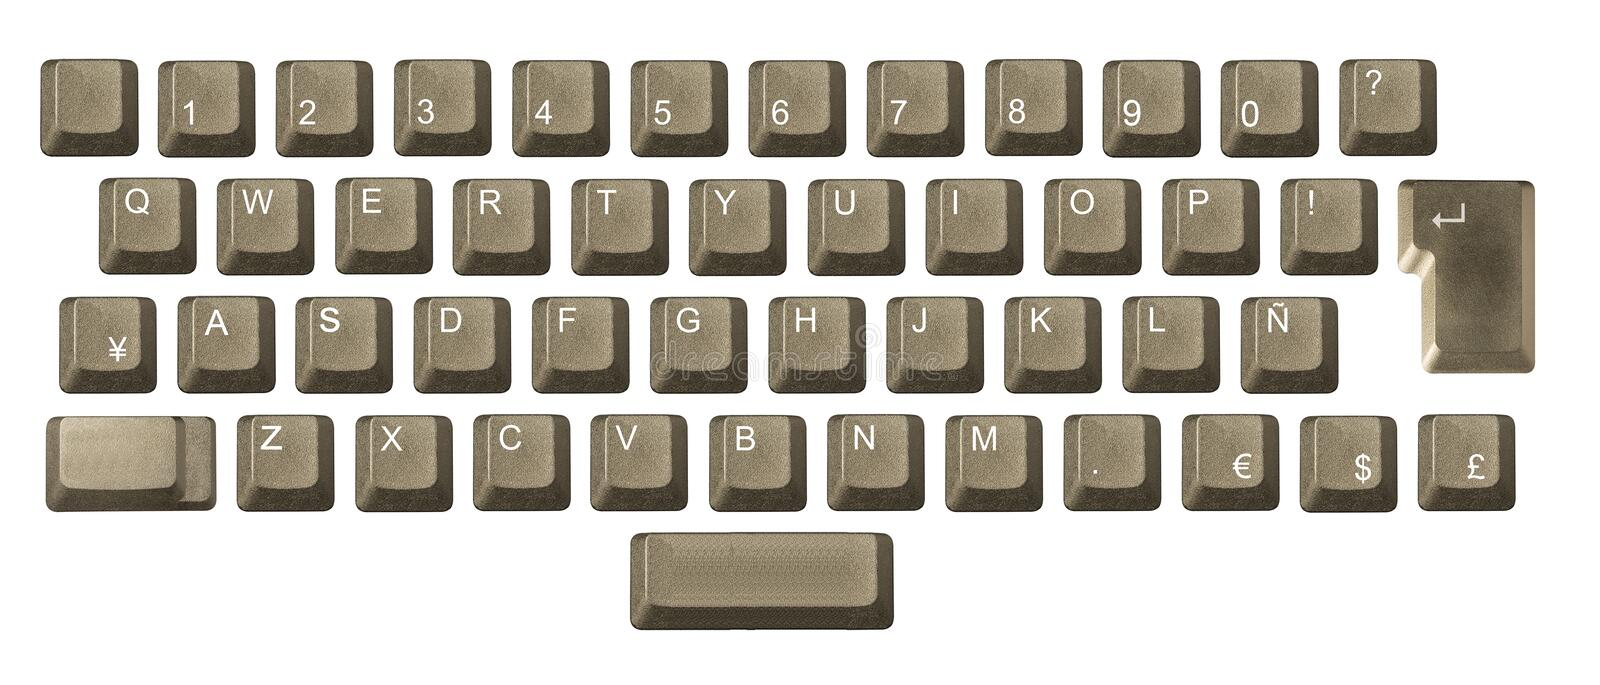 Download Computer Key In A Keyboard Royalty Free Stock Image - Image: 5280026